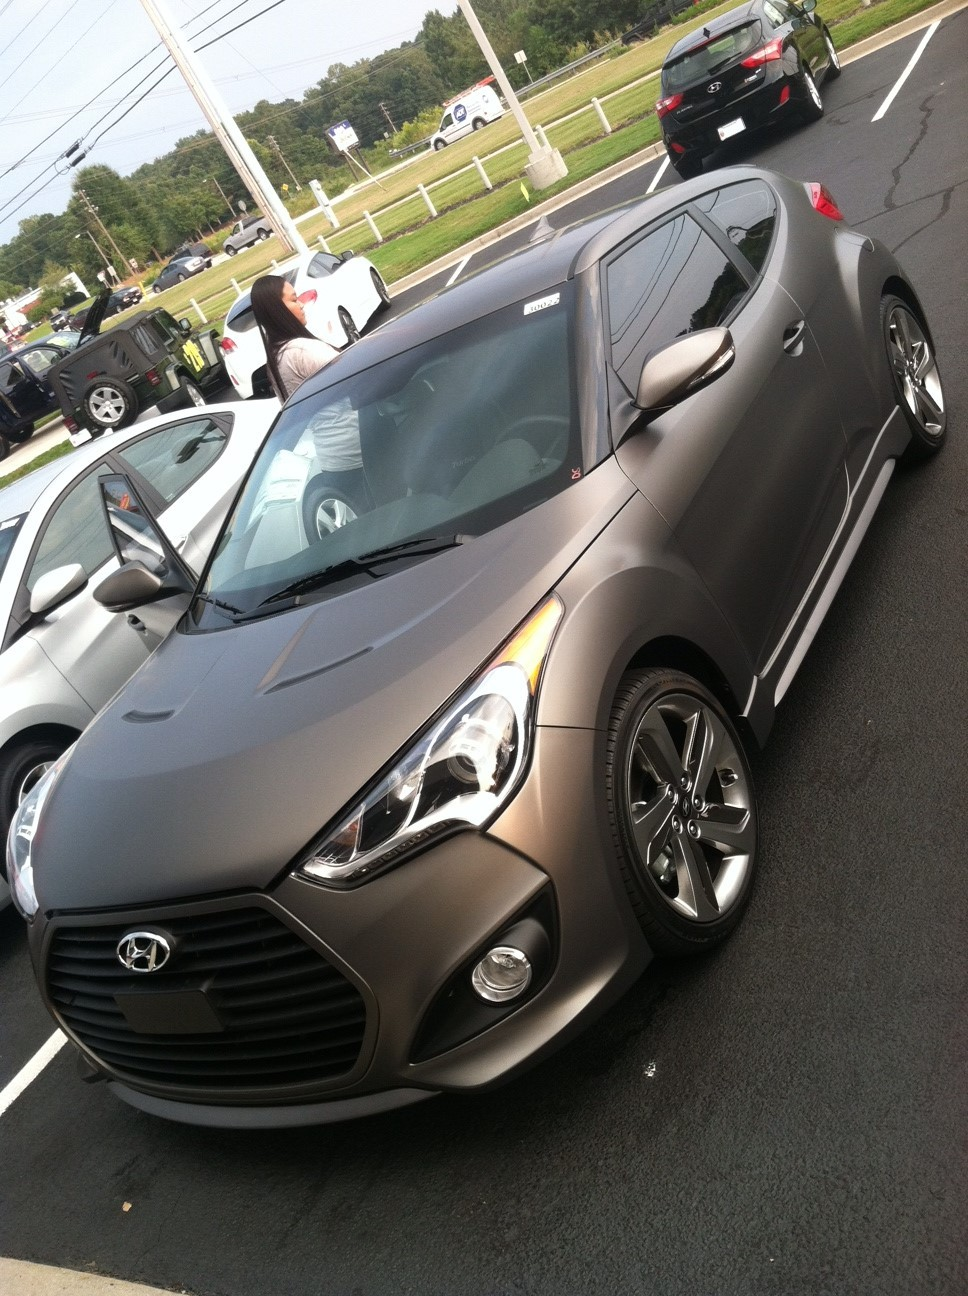 Stock 2013 Hyundai Veloster Turbo 1 4 Mile Trap Speeds 0 60 Dragtimes Com